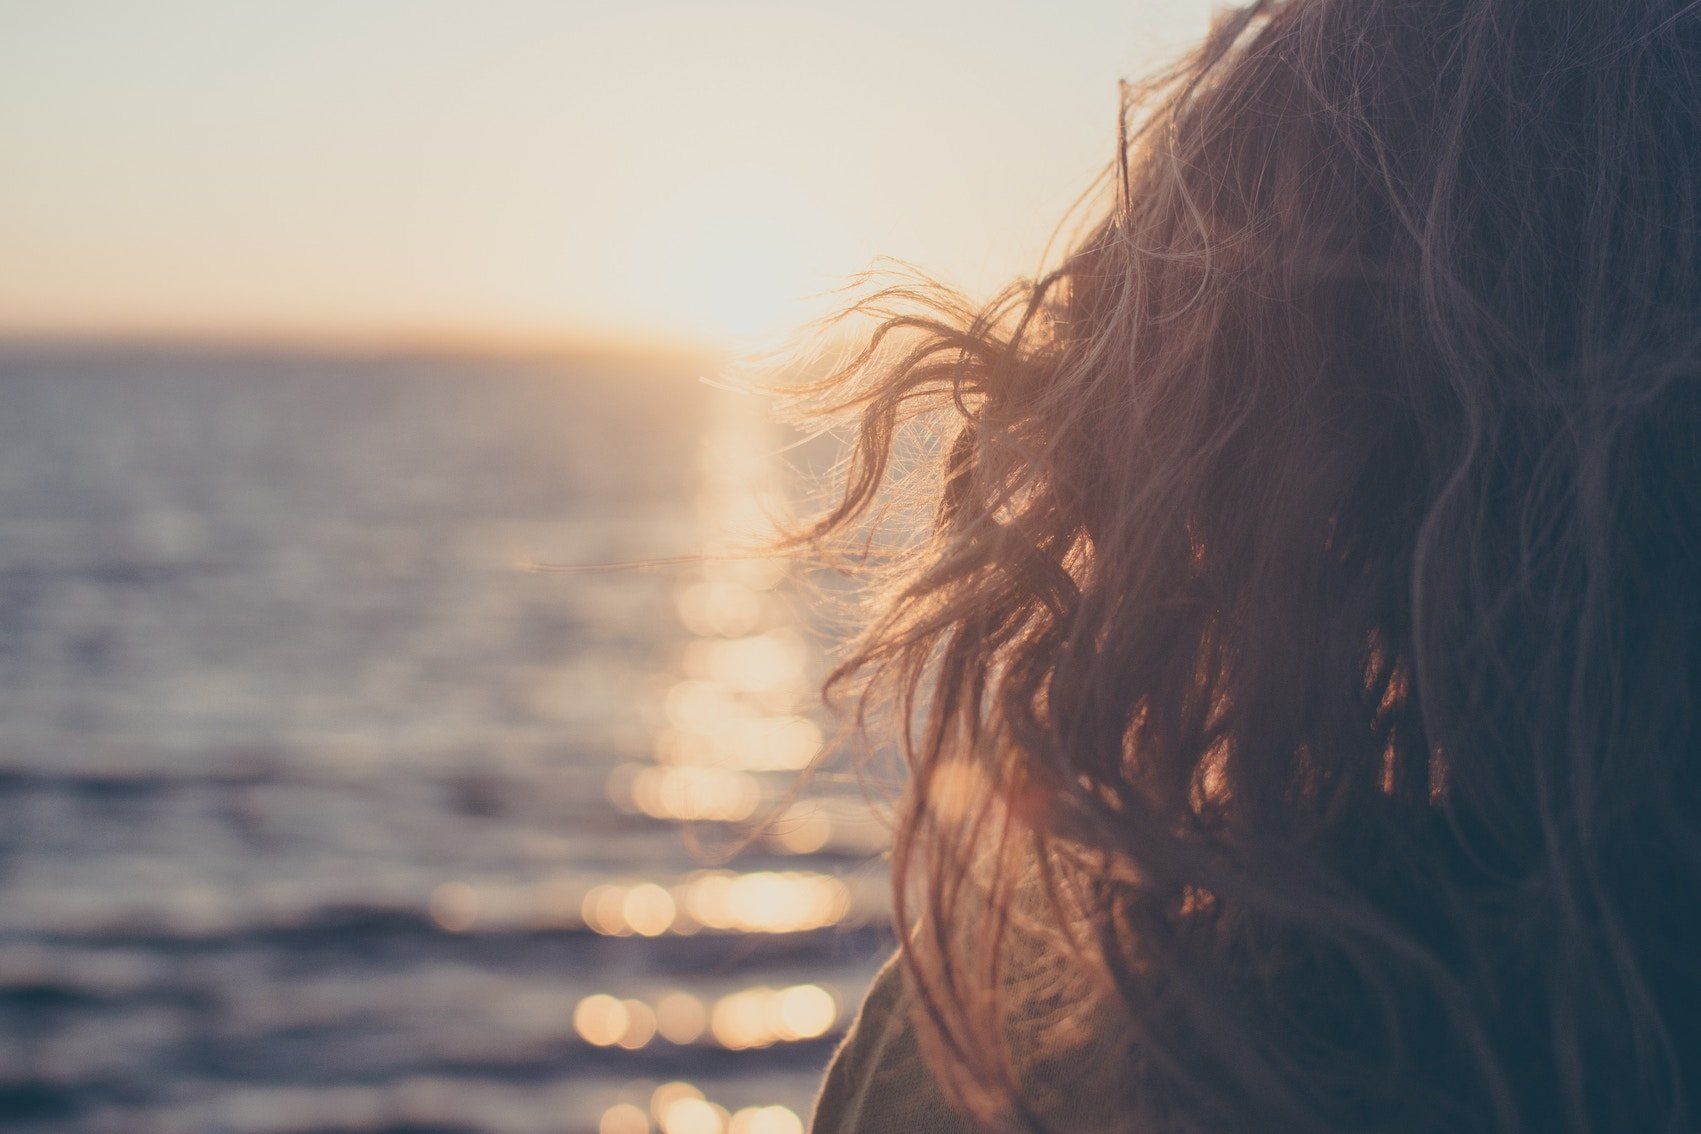 Girl Over Looking Ocean At Sunset